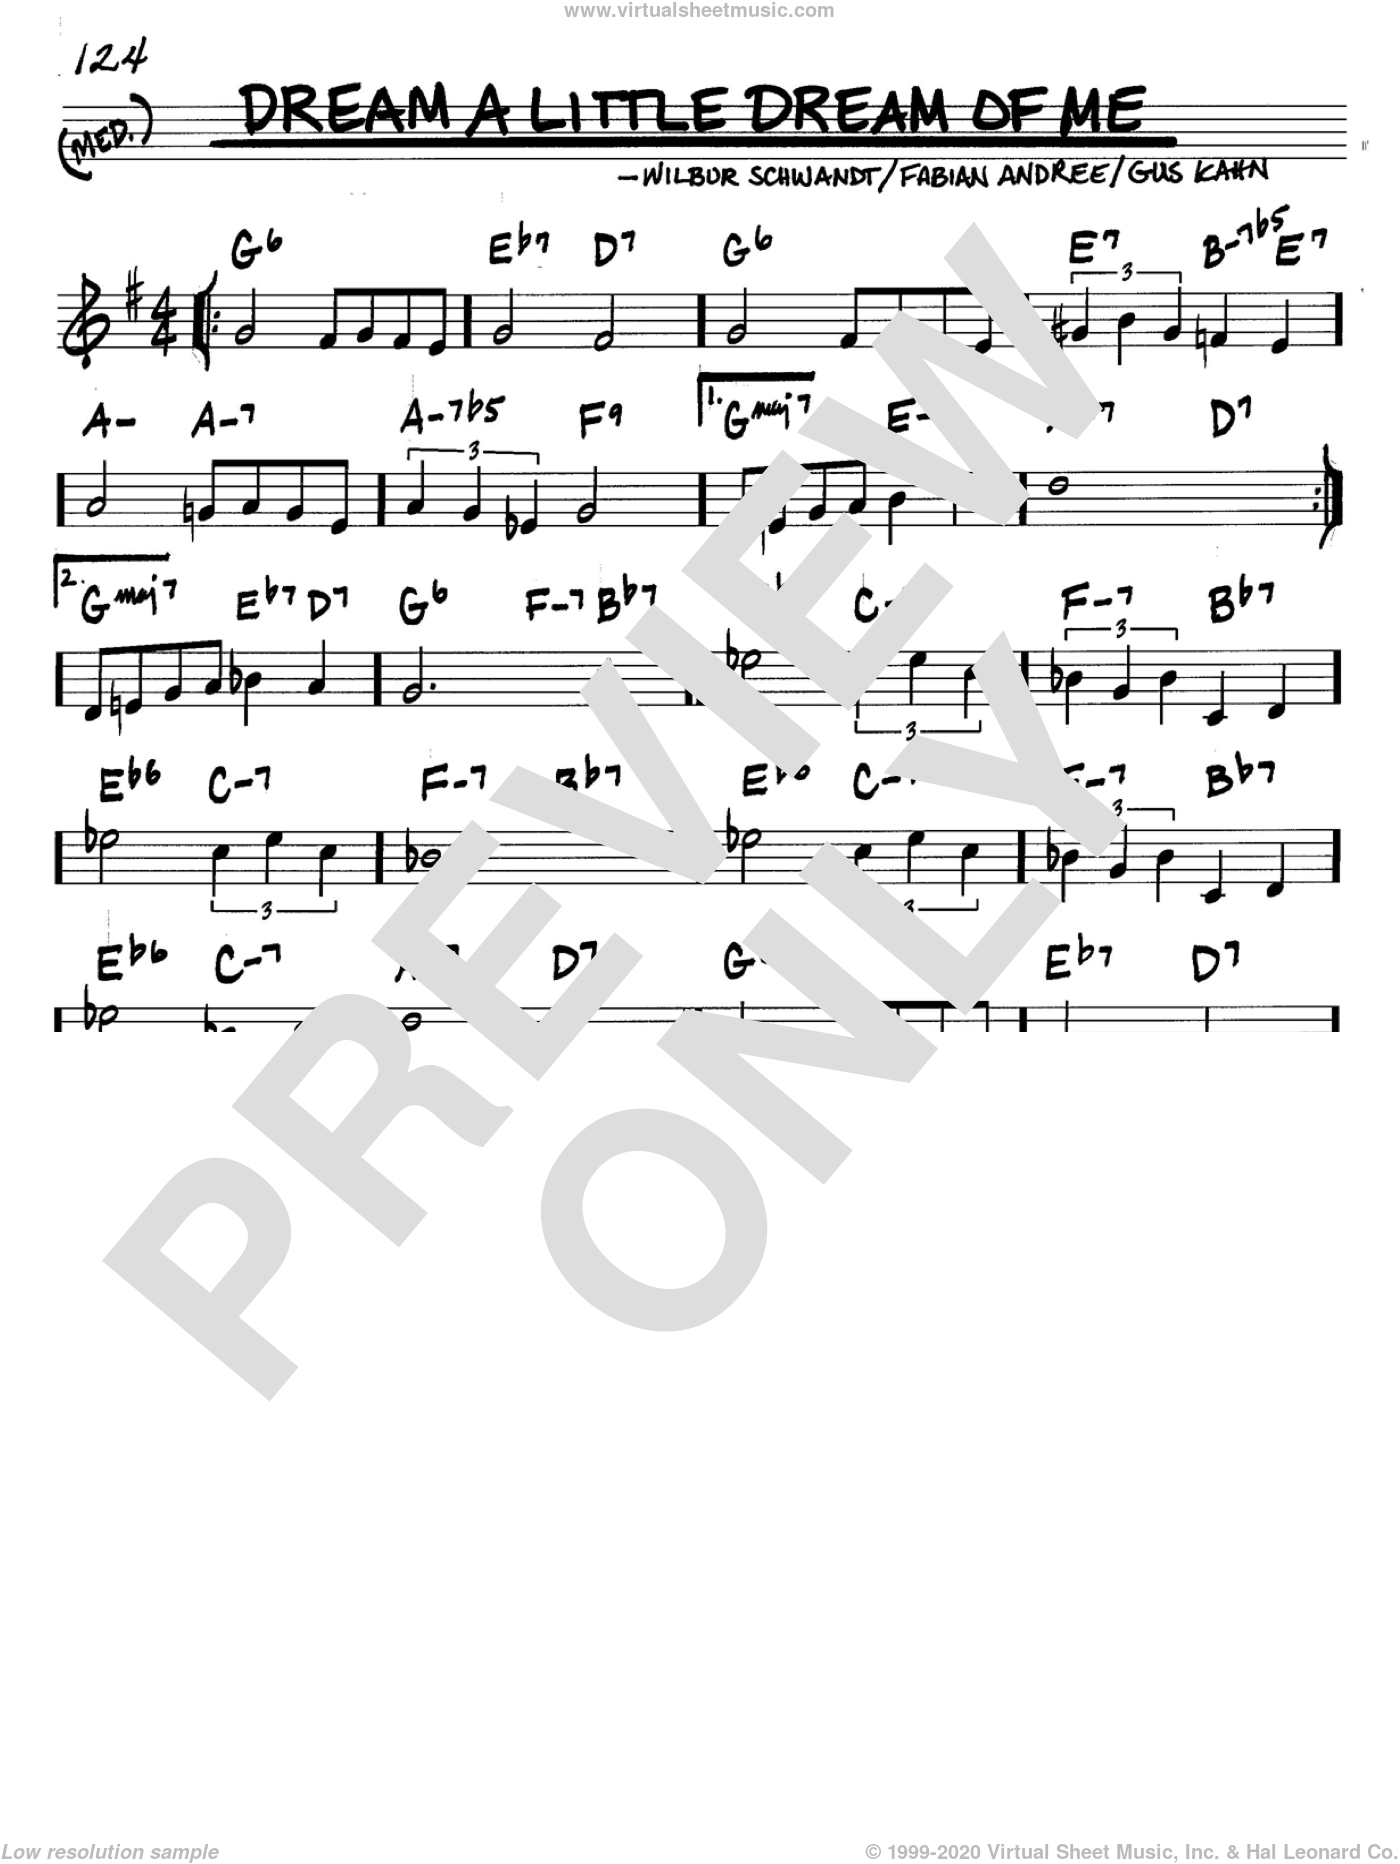 Dream A Little Dream Of Me sheet music for voice and other instruments (in C) by Louis Armstrong, The Mamas & The Papas, Fabian Andree, Gus Kahn and Wilbur Schwandt, intermediate